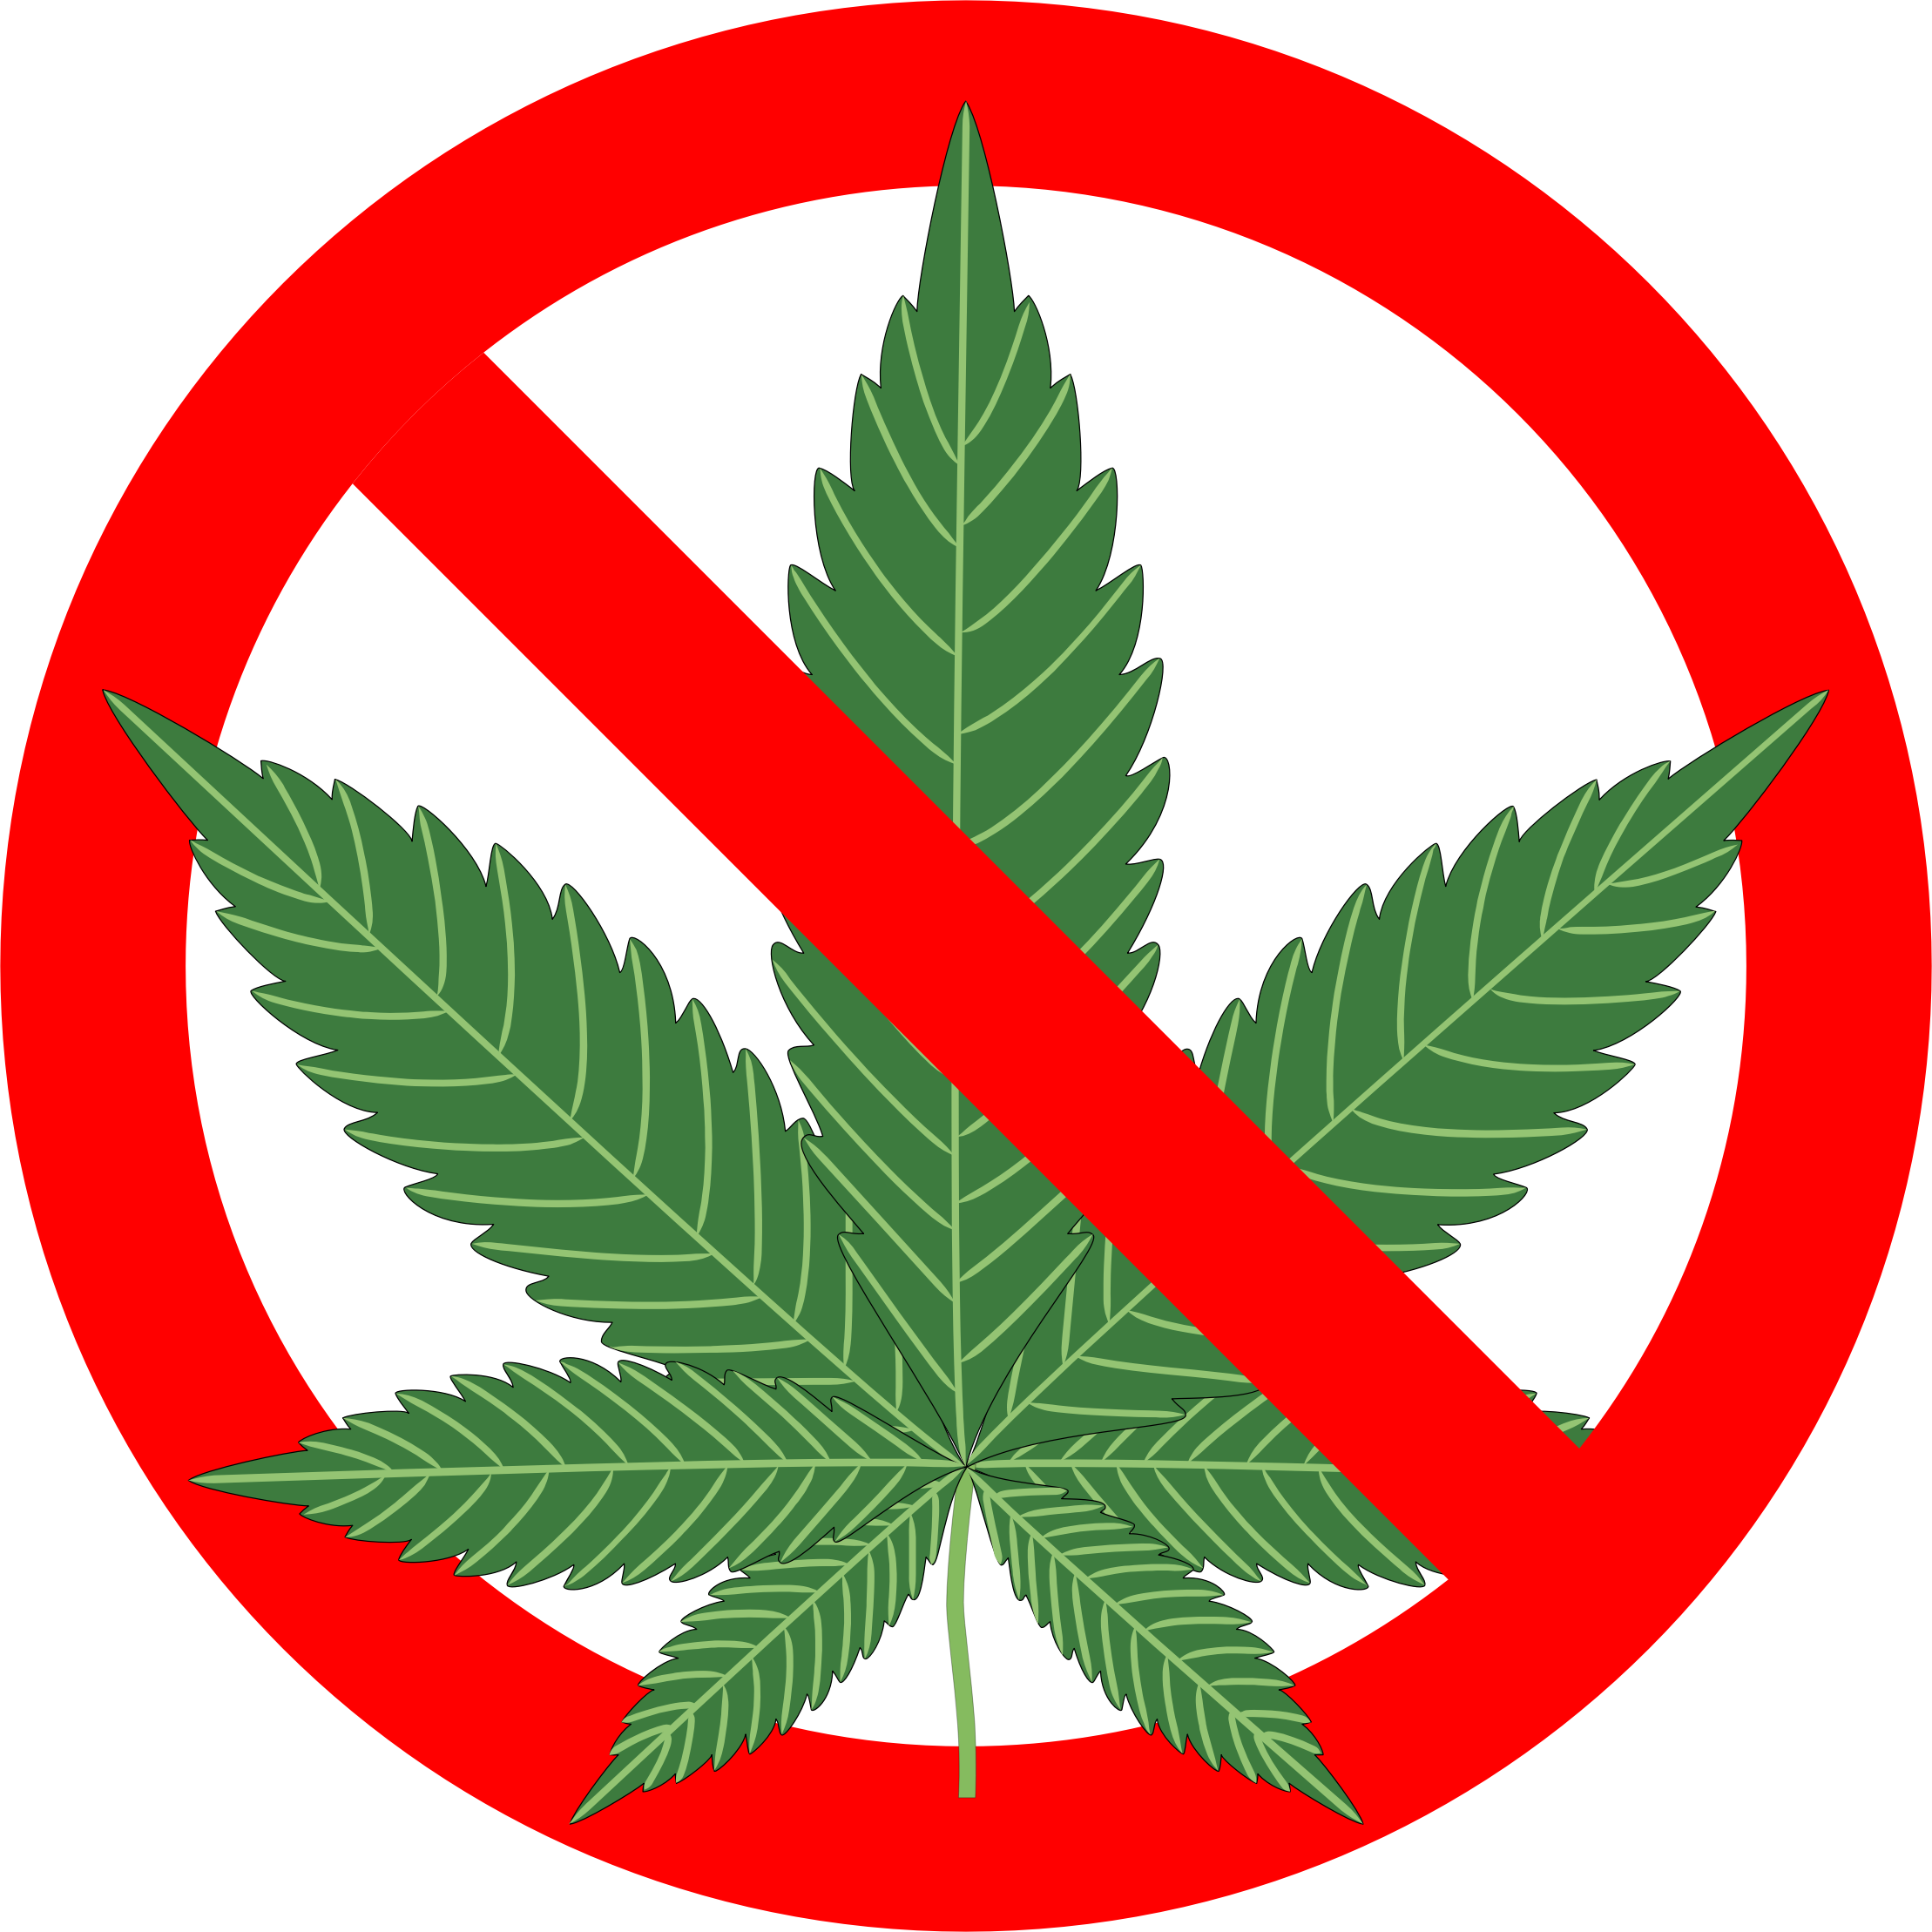 No Marijuana Sign by GDJ